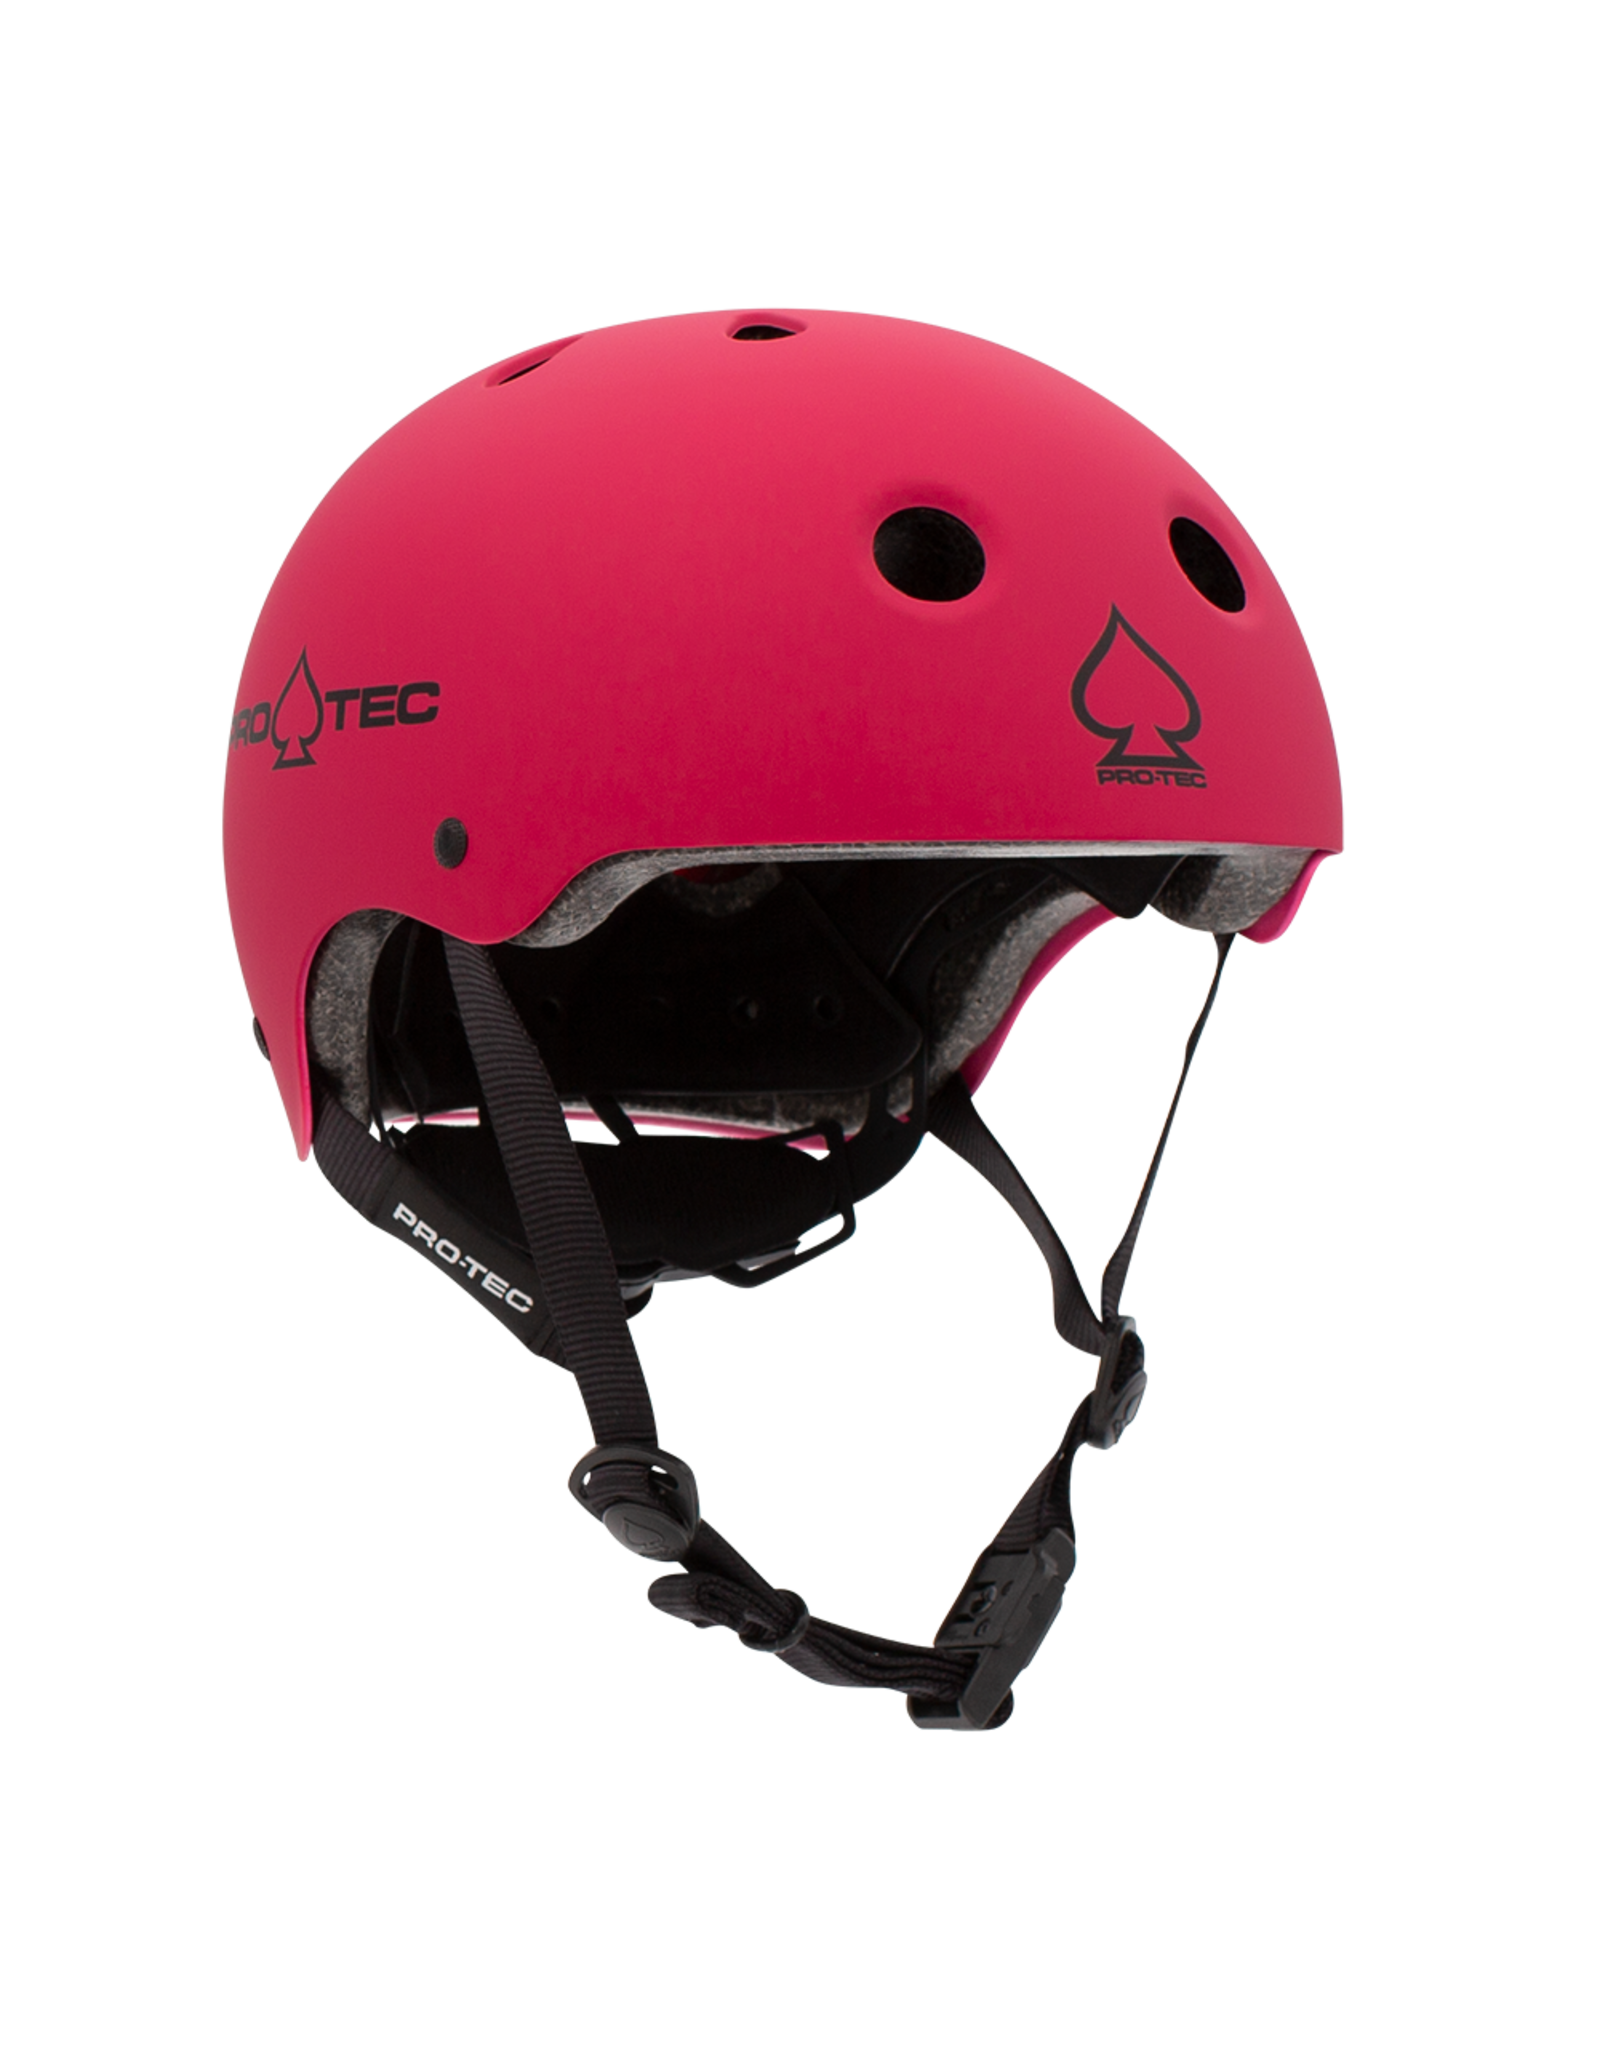 Pro-Tec Junior Classic Fit (Certified) - Matte Pink